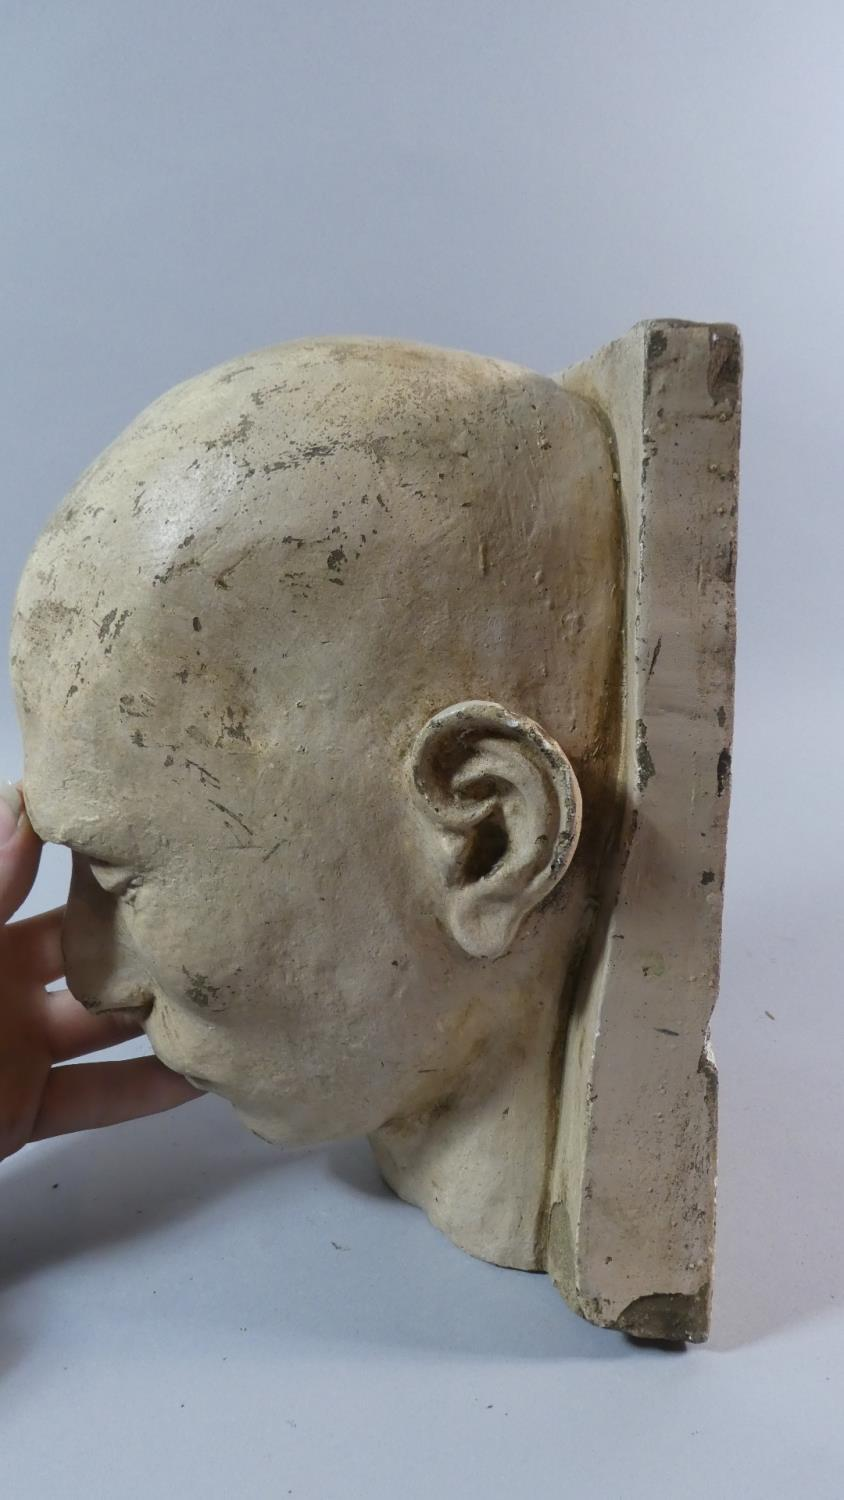 A 19th Century Plaster Death Mask of a Shaven Headed Man, Possibly a Convict or Asylum Inmate. - Image 5 of 7